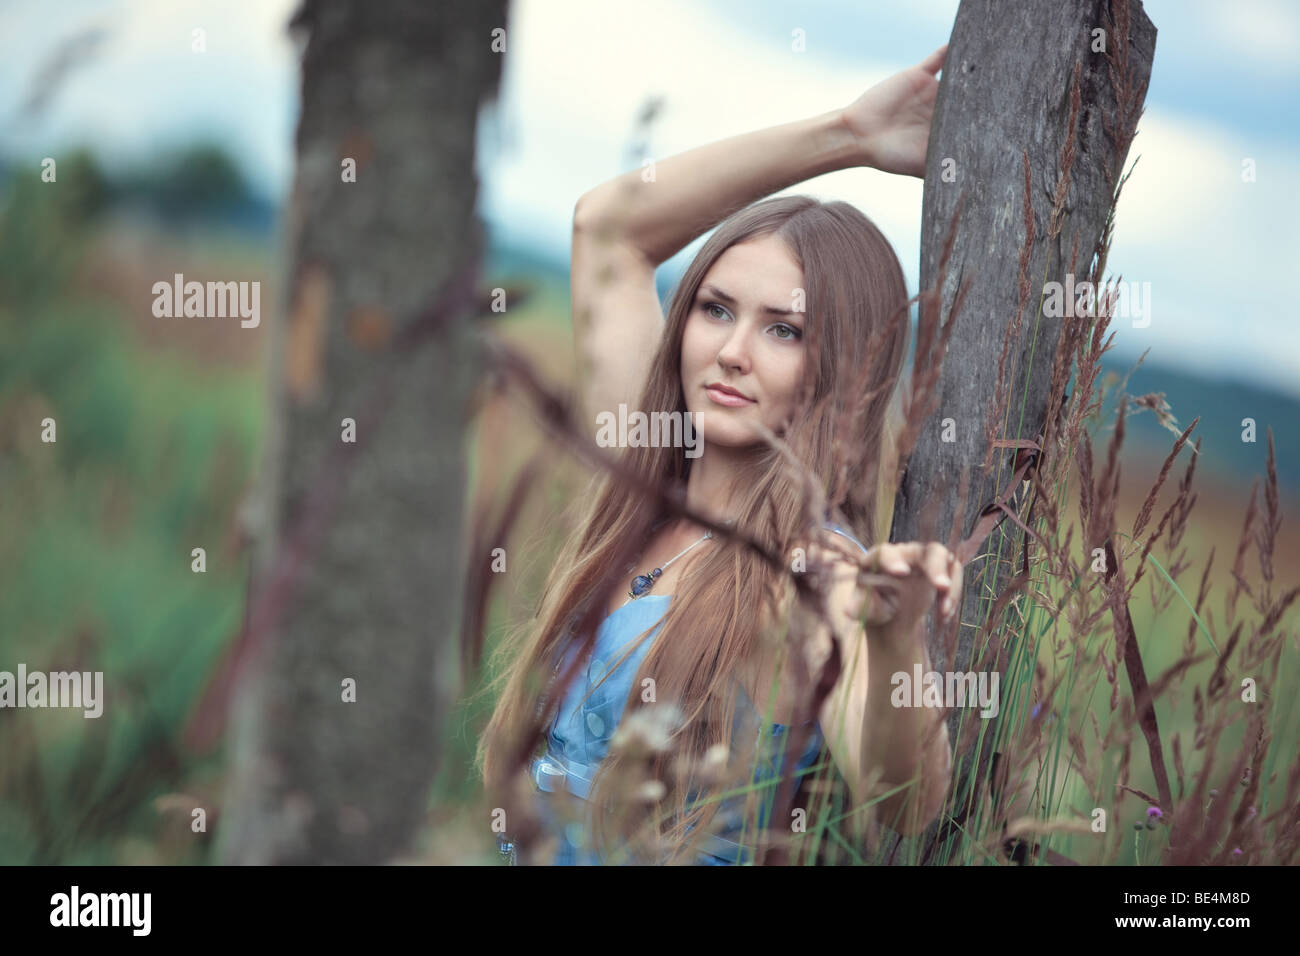 Young woman in a summer field calm portrait. Soft colors. - Stock Image